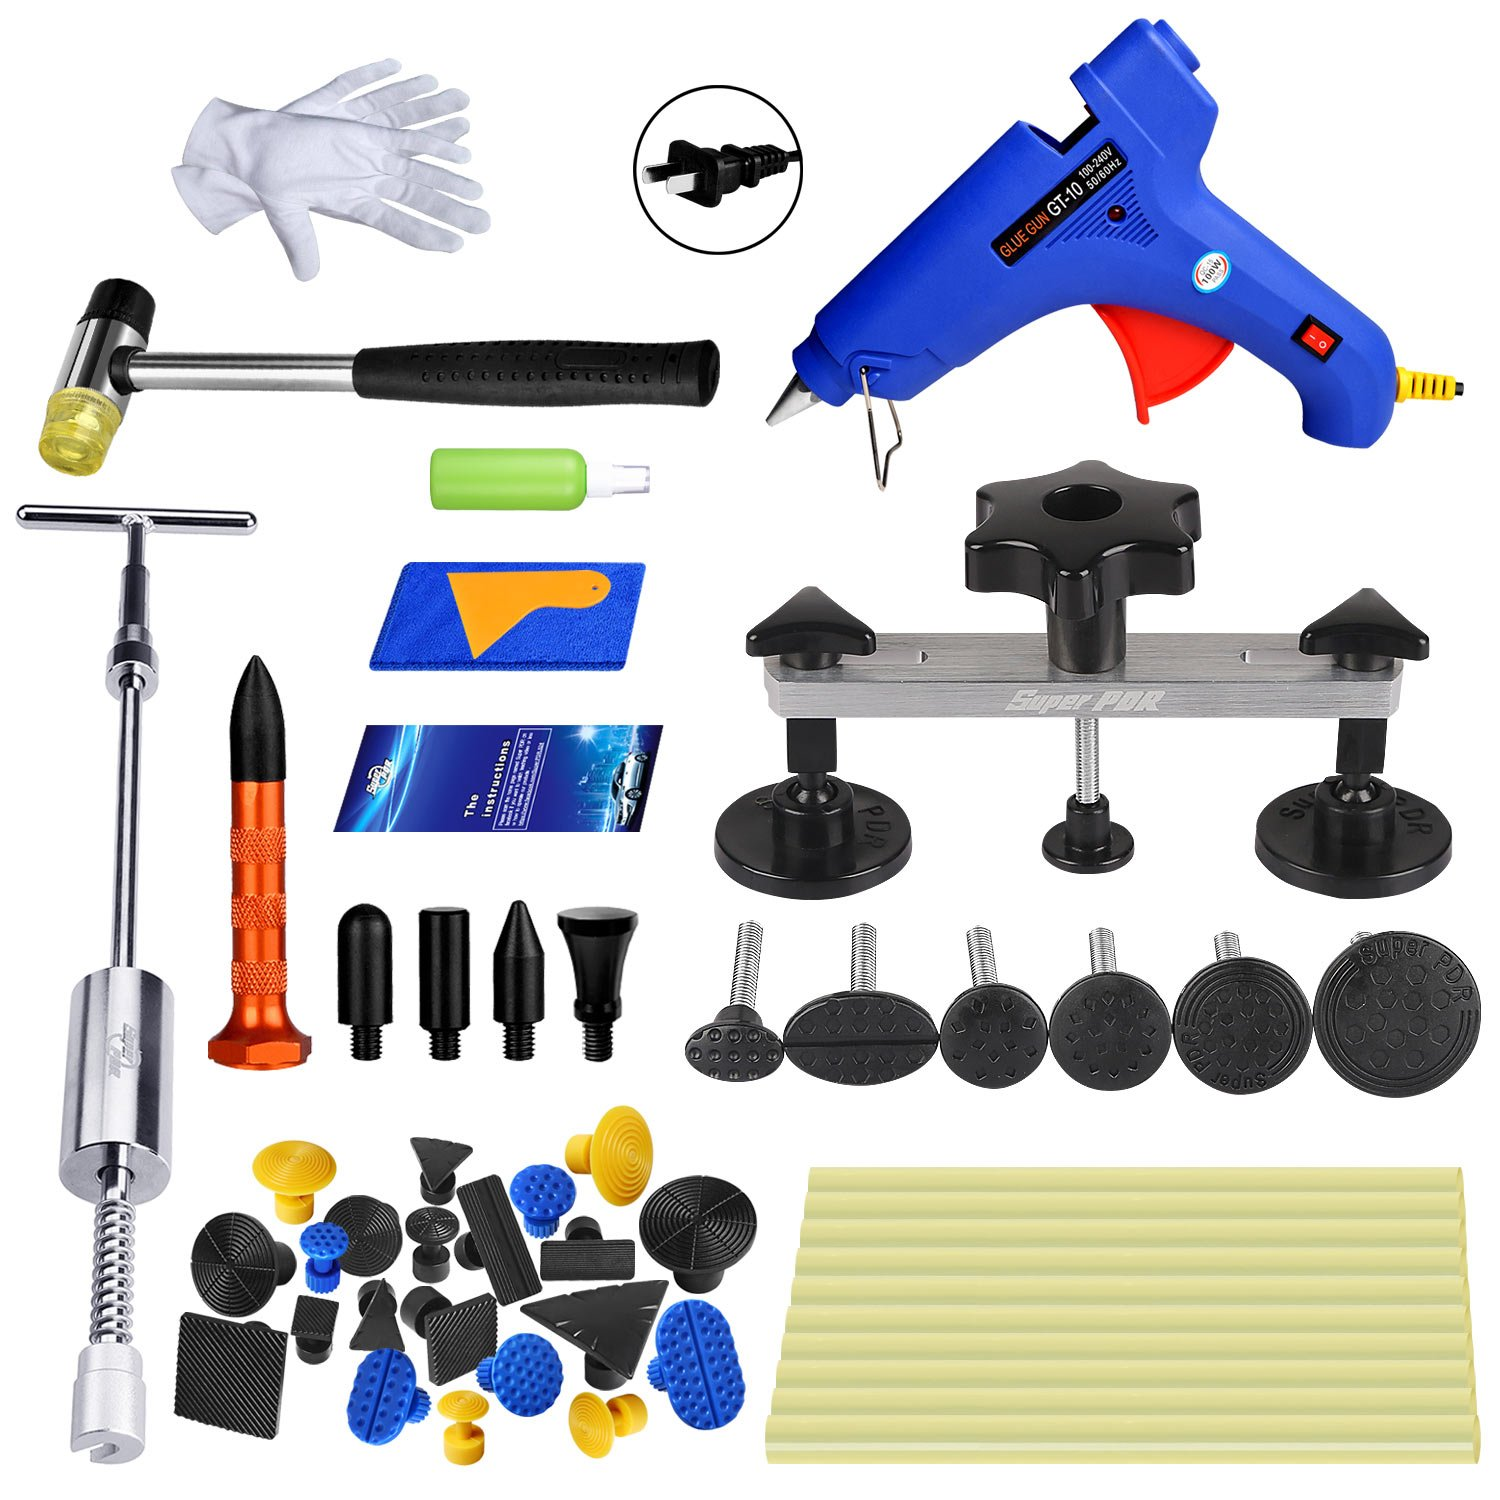 Super PDR 41pcs Car Auto Body Dent Puller Removal Repair Tool Kit Dent Lifter Bridge Puller Set for Car Hail Damage and Door Dings Repair by Super PDR (Image #1)